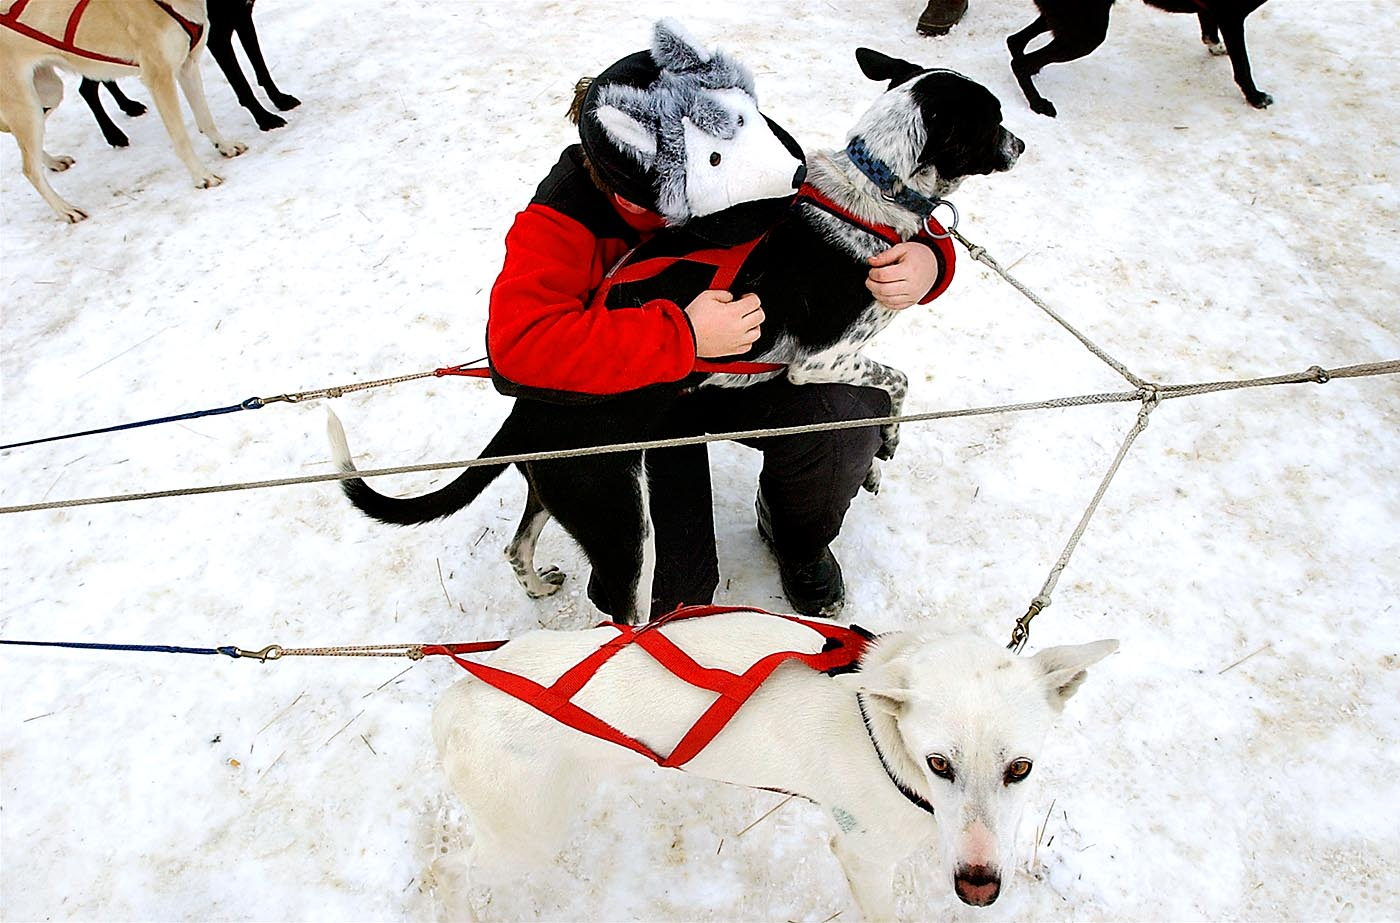 Rachel Colbath, 10, of Gilford, NH hugs a sled dog before her uncle's race in the World Championship Sled Dog Derby in Laconia, NH. Rachel has been racing dogs for four years and proudly wore the hat she recently won after finishing third place.